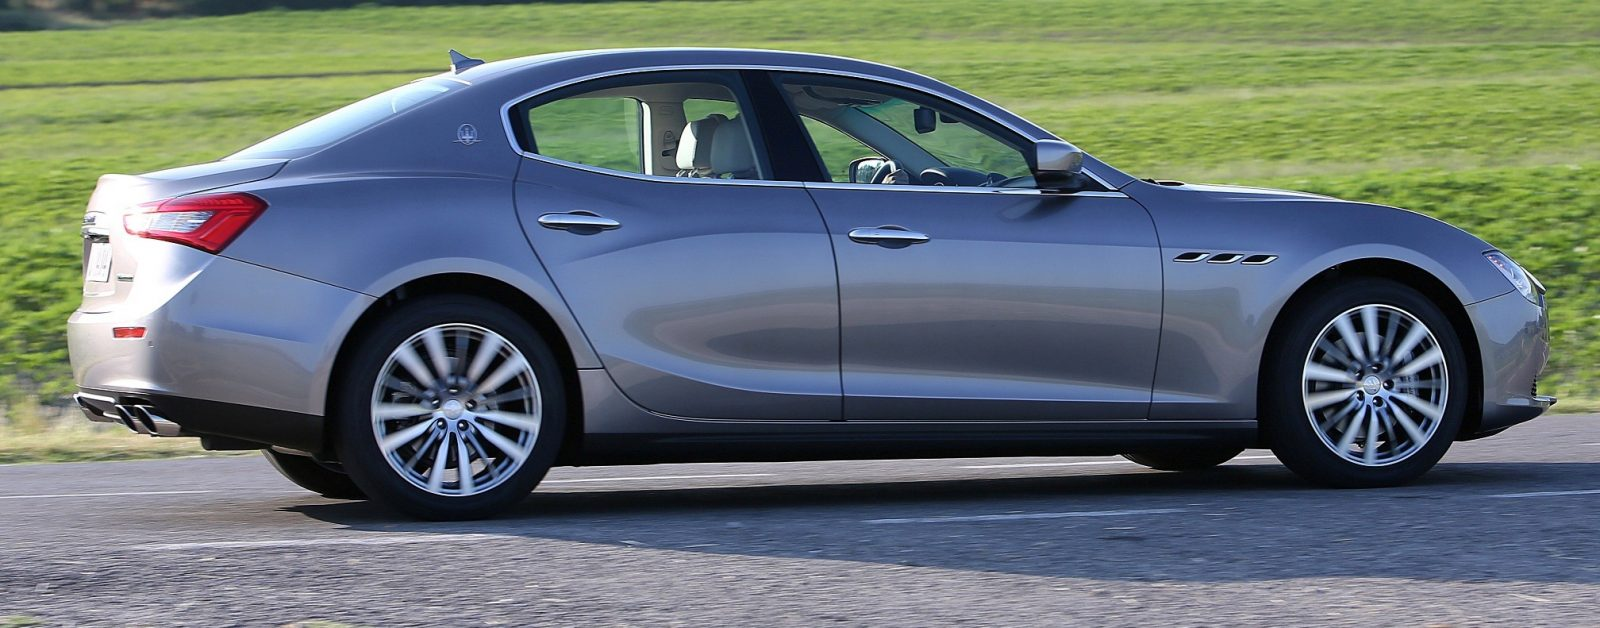 2014 Maserati Ghibli - Latest Official Photos 19